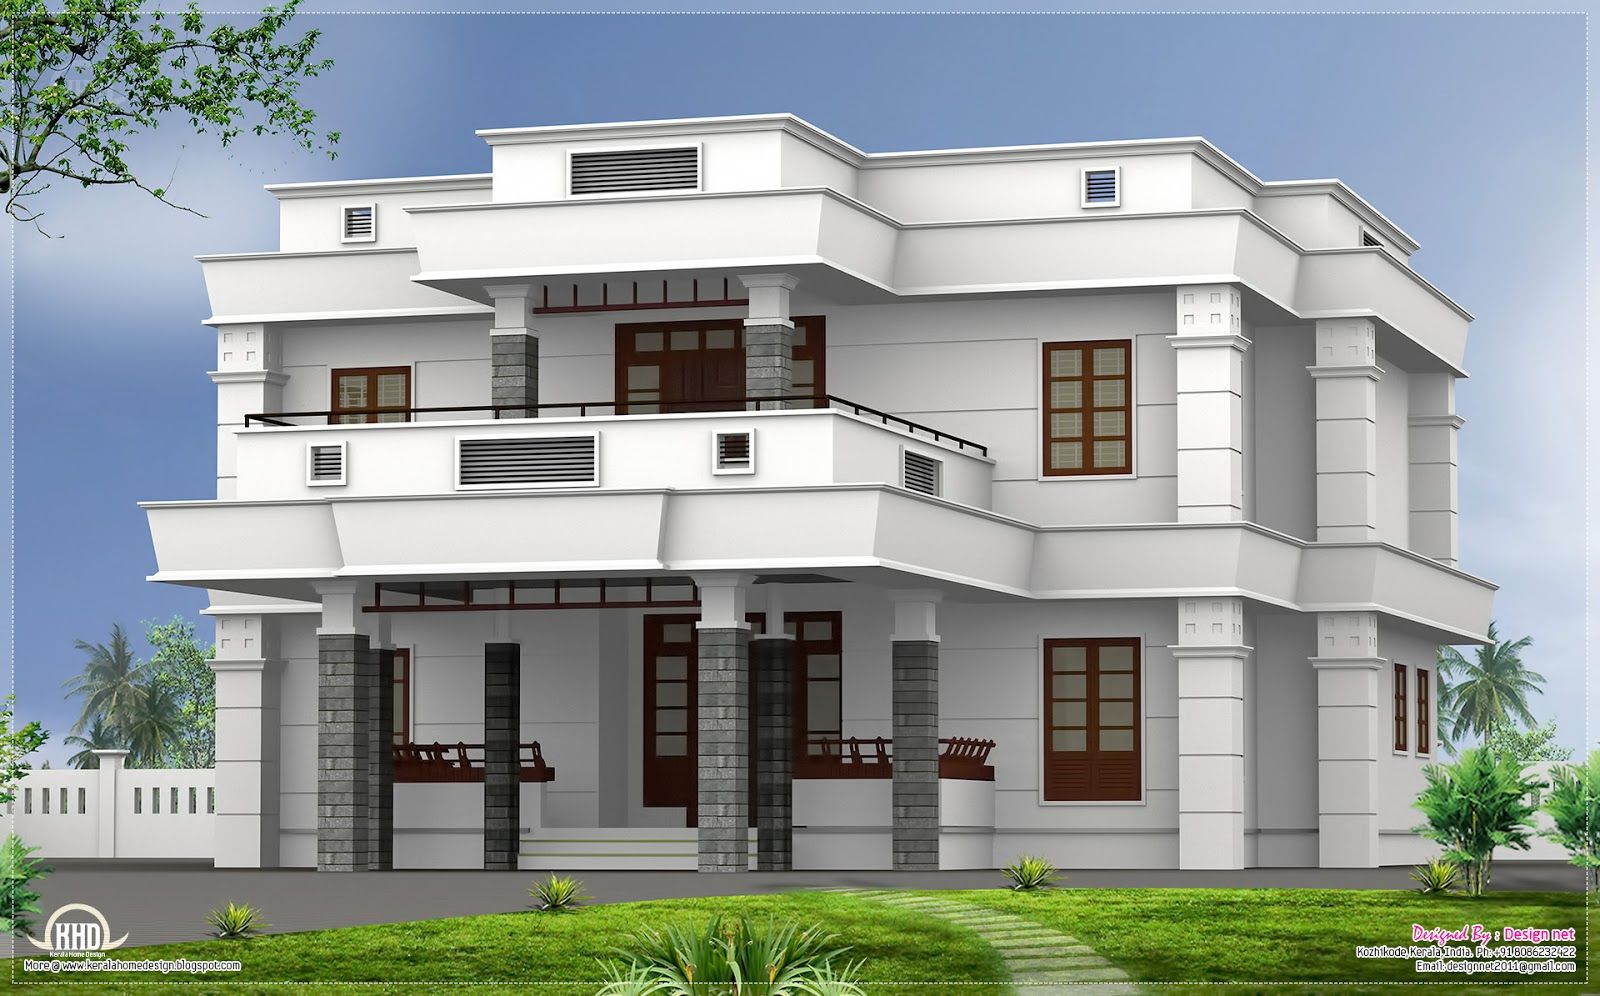 Flat roof homes designs bhk modern flat roof house for Home colour design